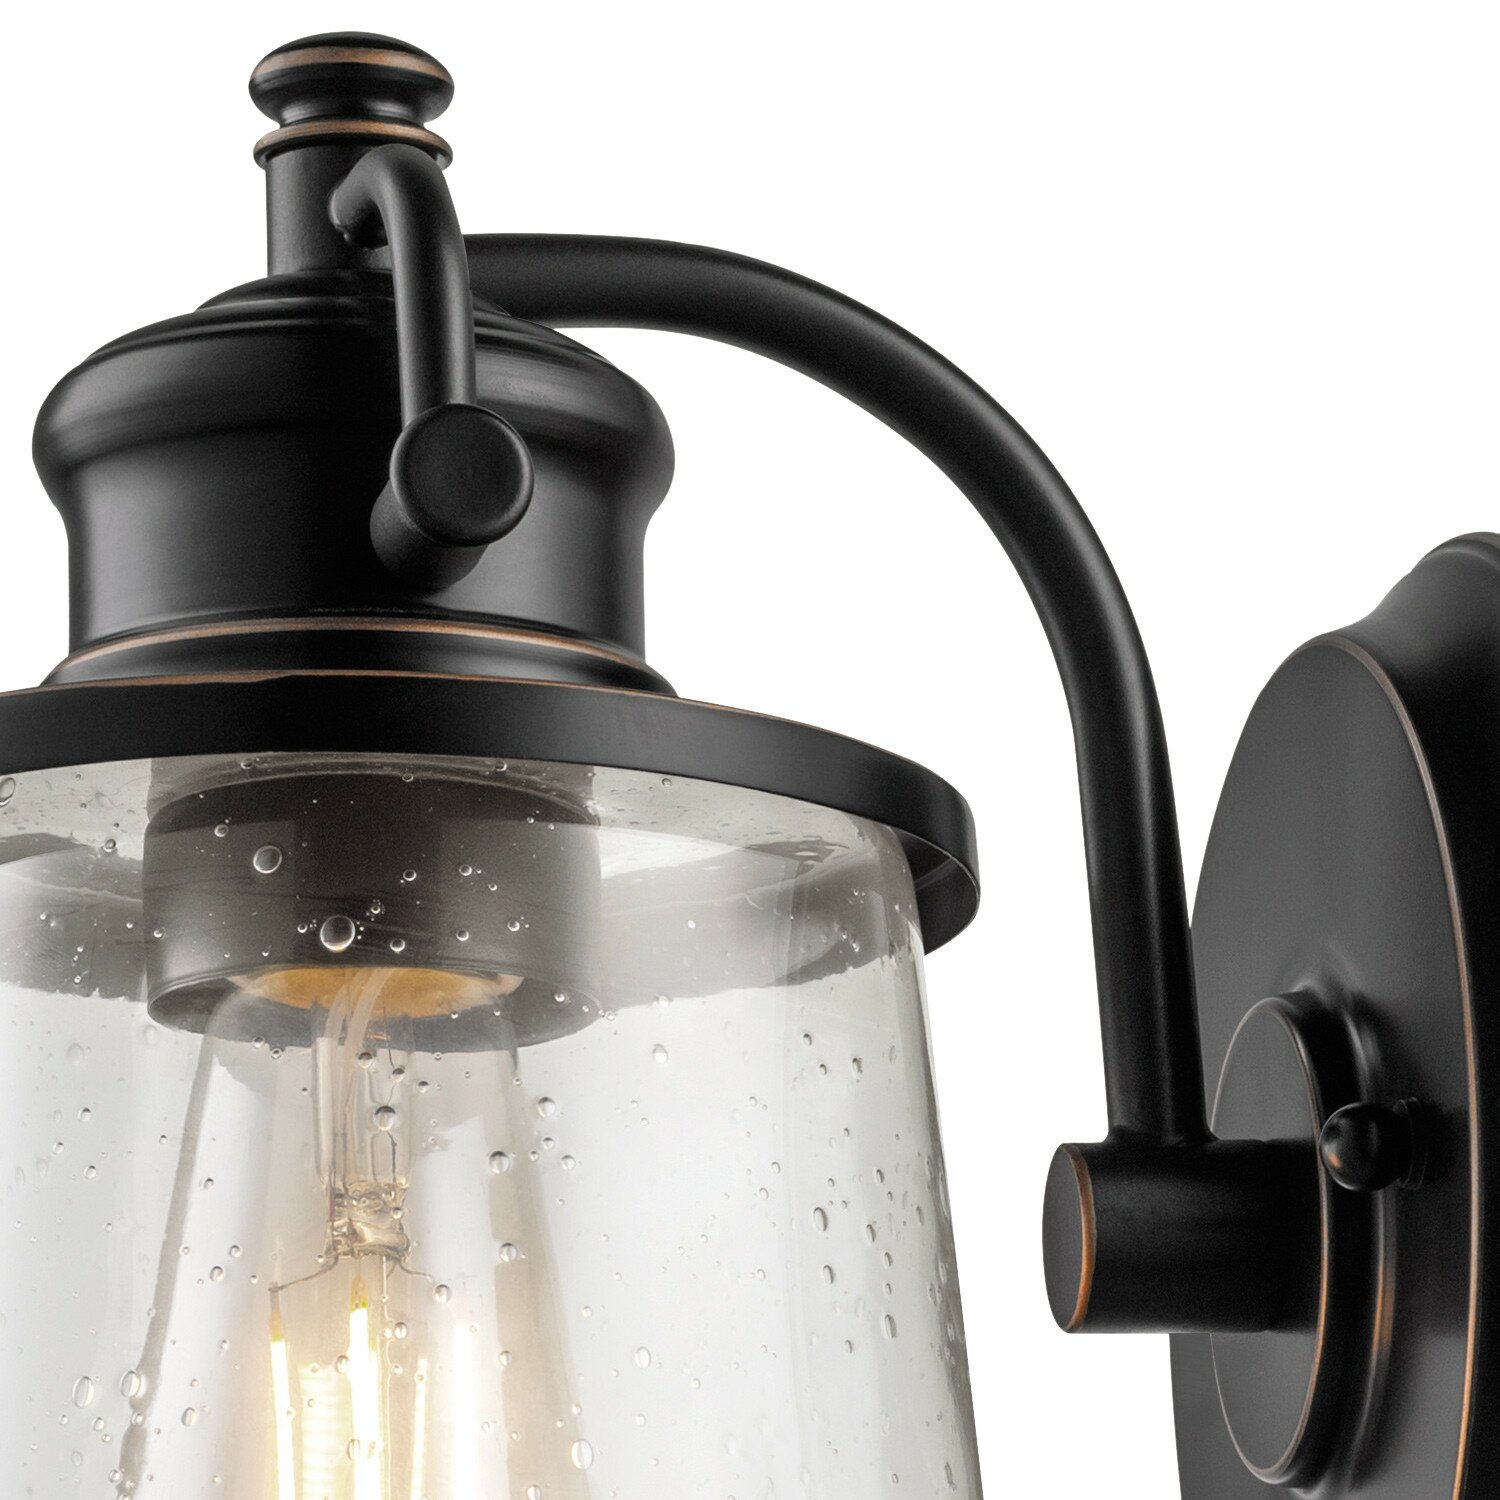 Outdoor Lighting Company: Globe Electric Company Charlie 1-Light Outdoor Wall Sconce